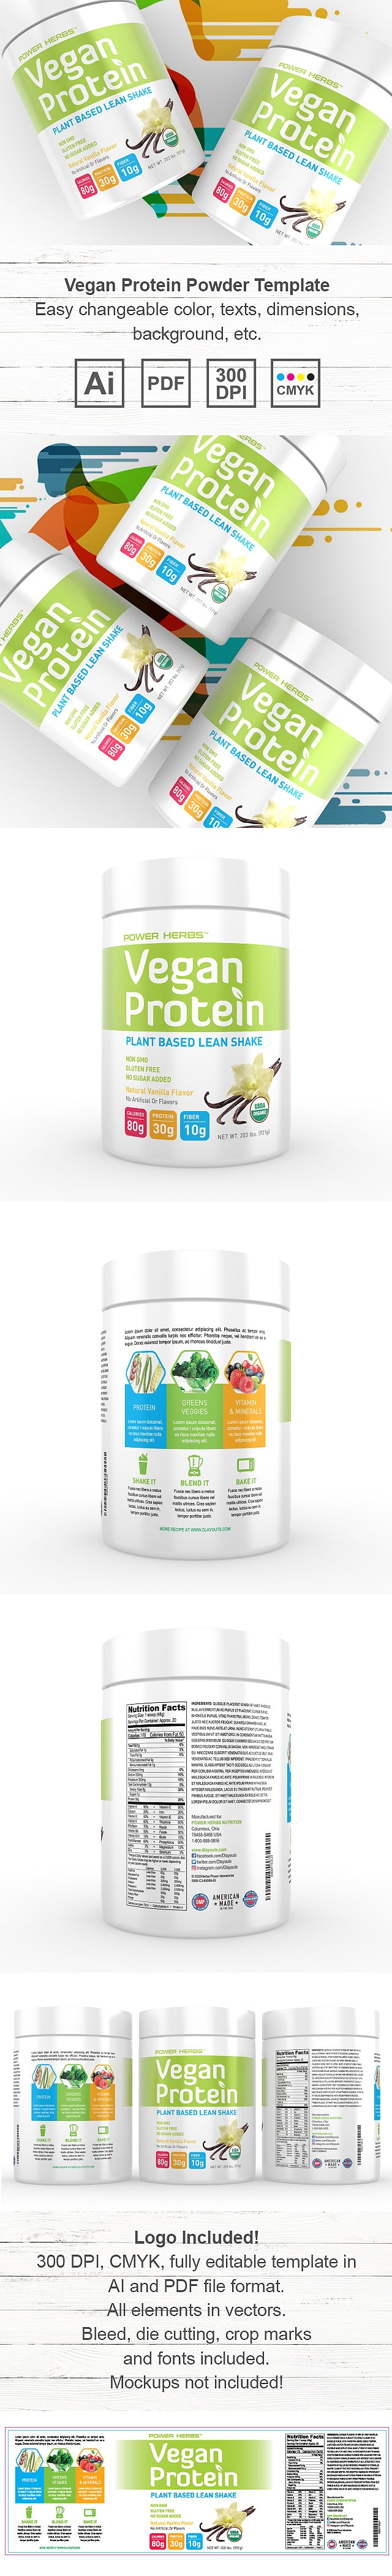 Vegan Plant Protein Powder Supplement Label Template